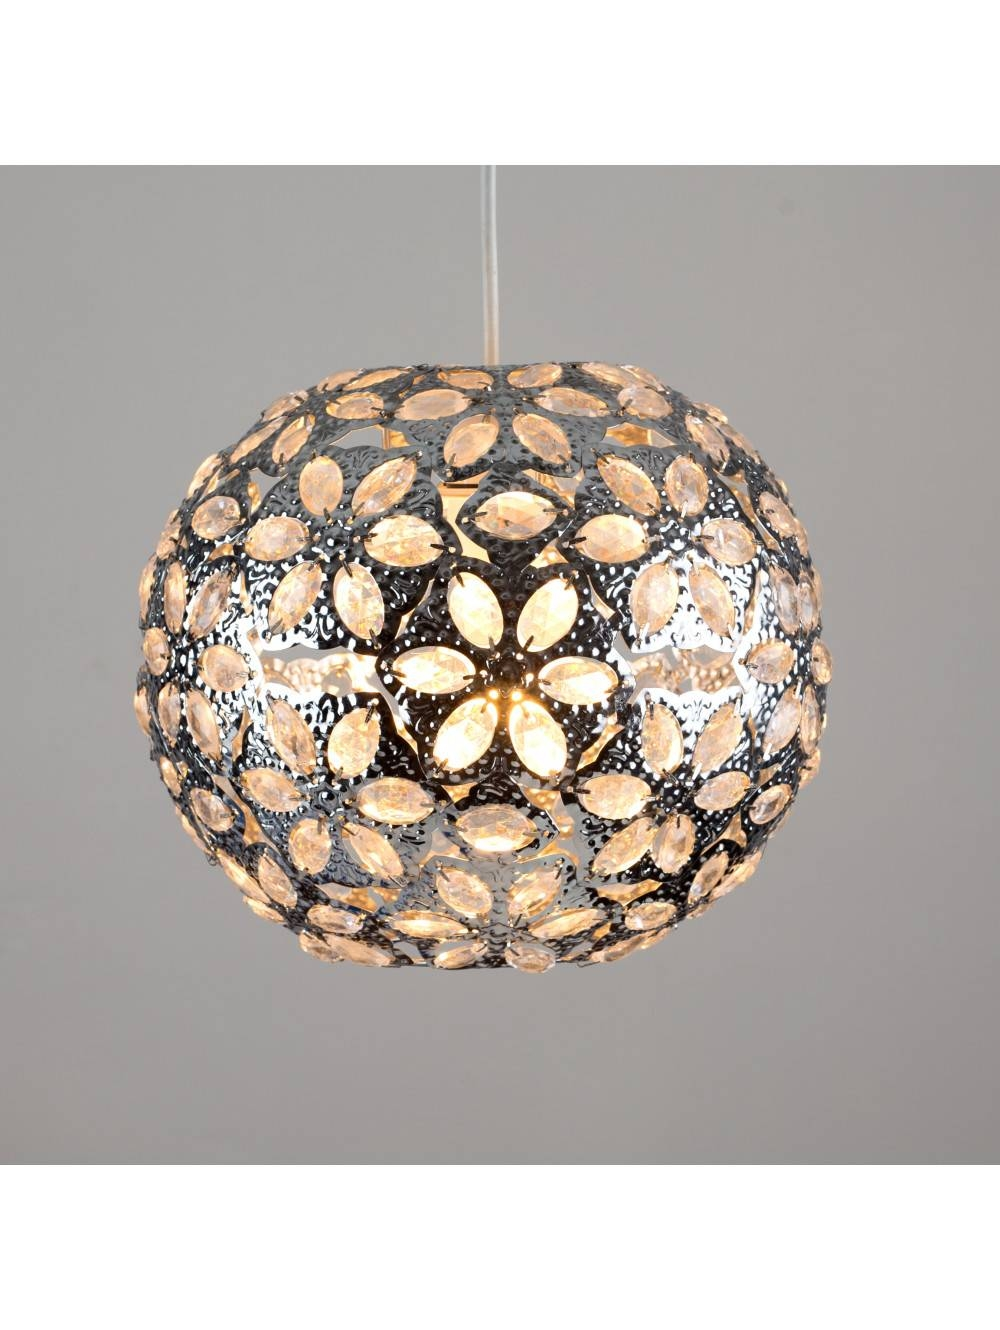 Moroccan Style Metal Ceiling Pendant Shade With Acrylic Jewel within Moroccan Style Pendant Ceiling Lights (Image 14 of 15)